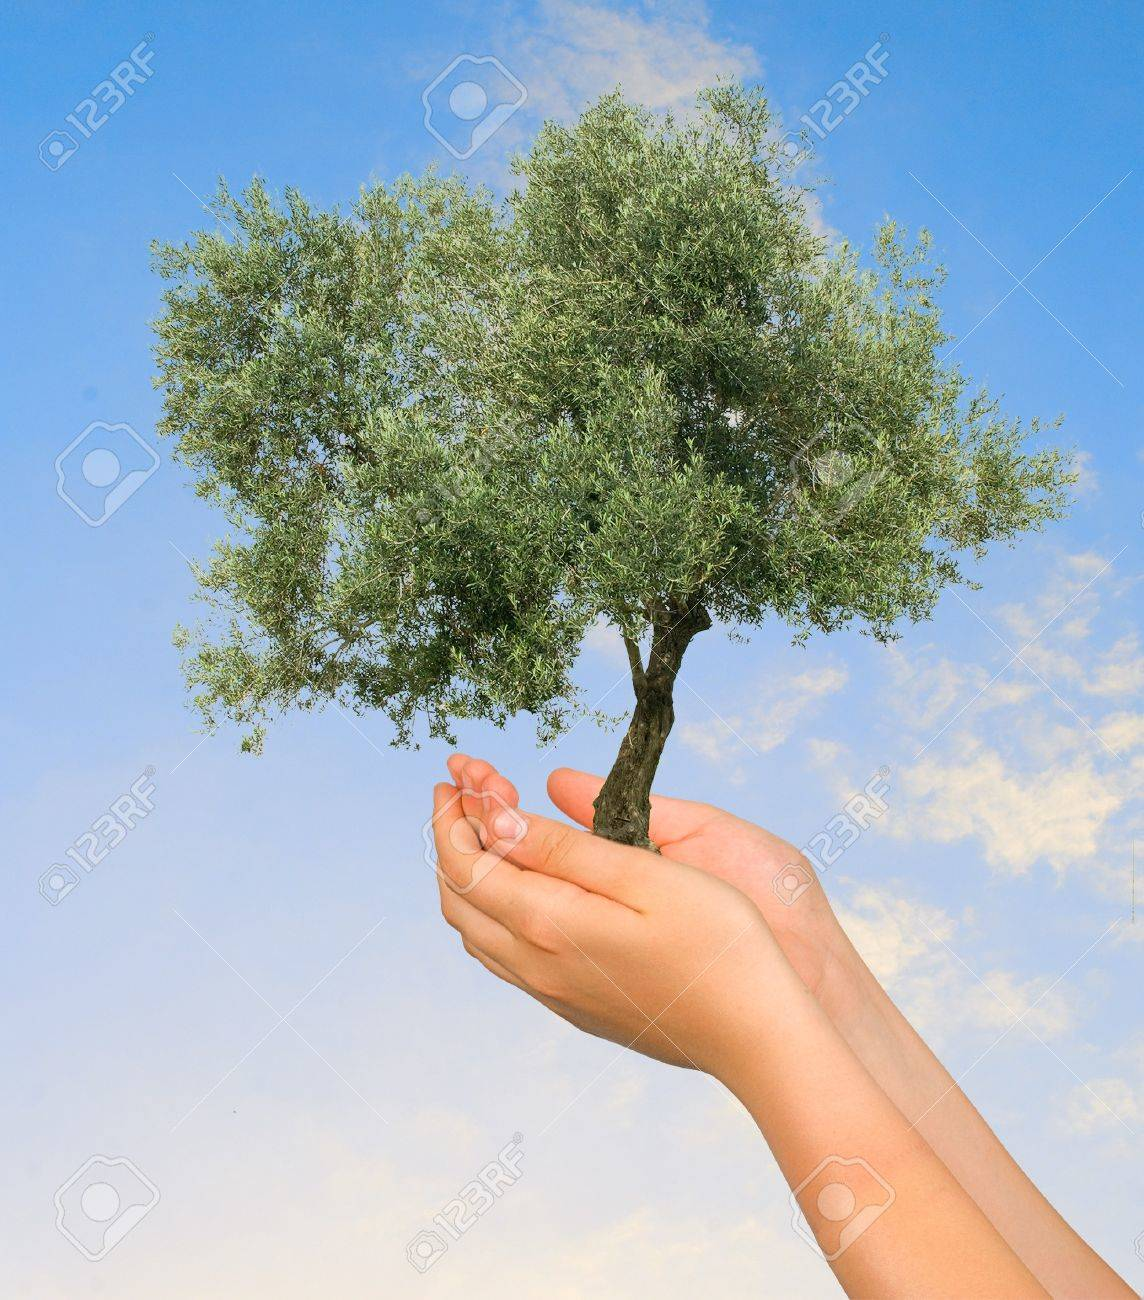 Olive tree  in hands as a symbol of nature protection Stock Photo - 7643526